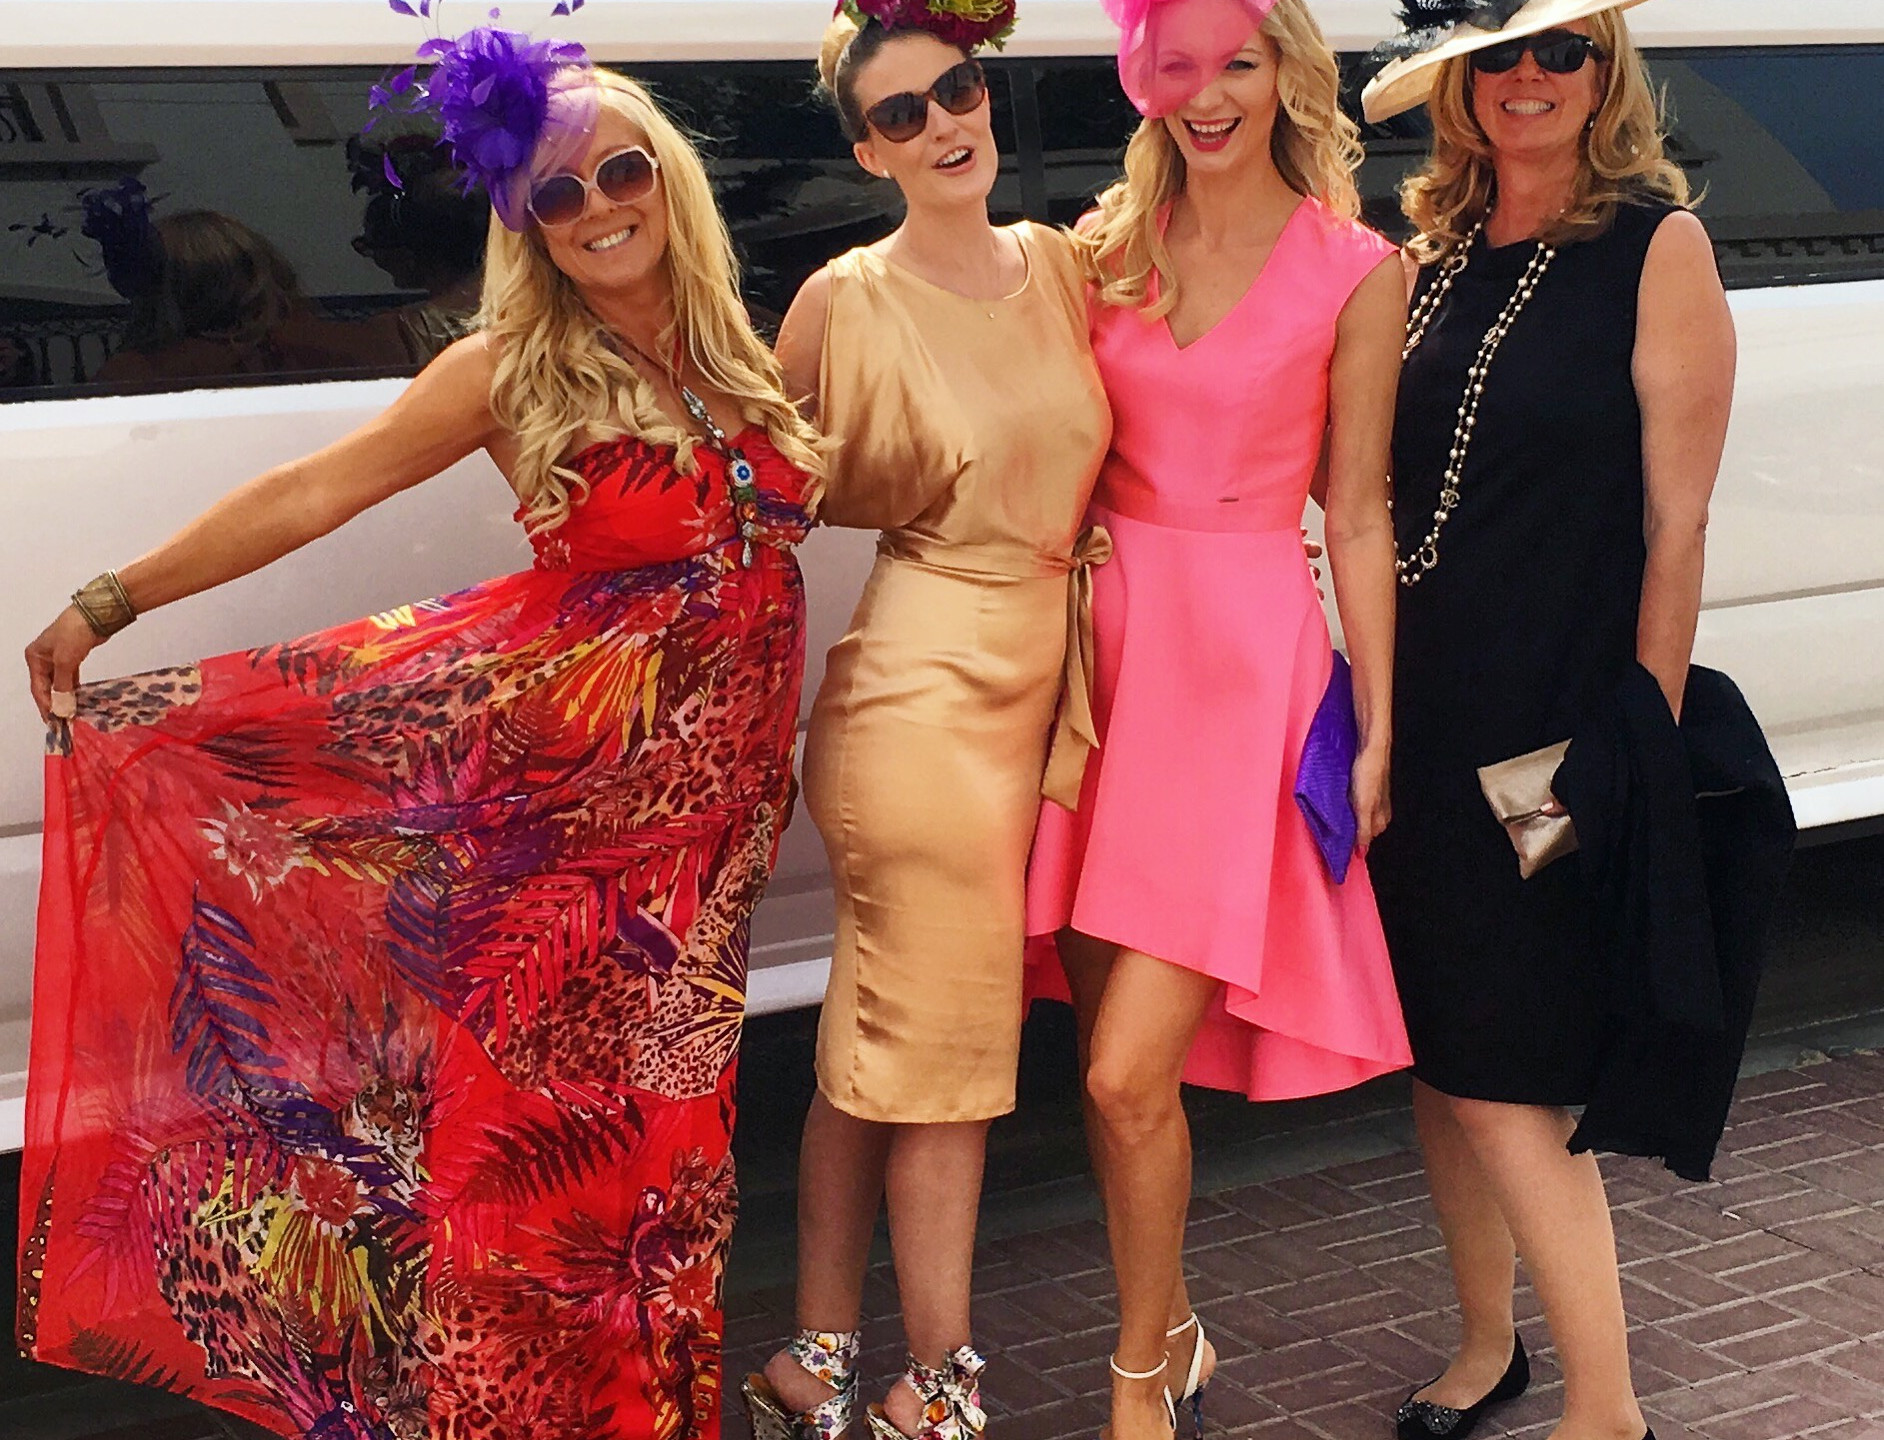 Ladies off to the Dubai World Cup. Franzie featuring her own flower hat by Franzie's Flower Design.